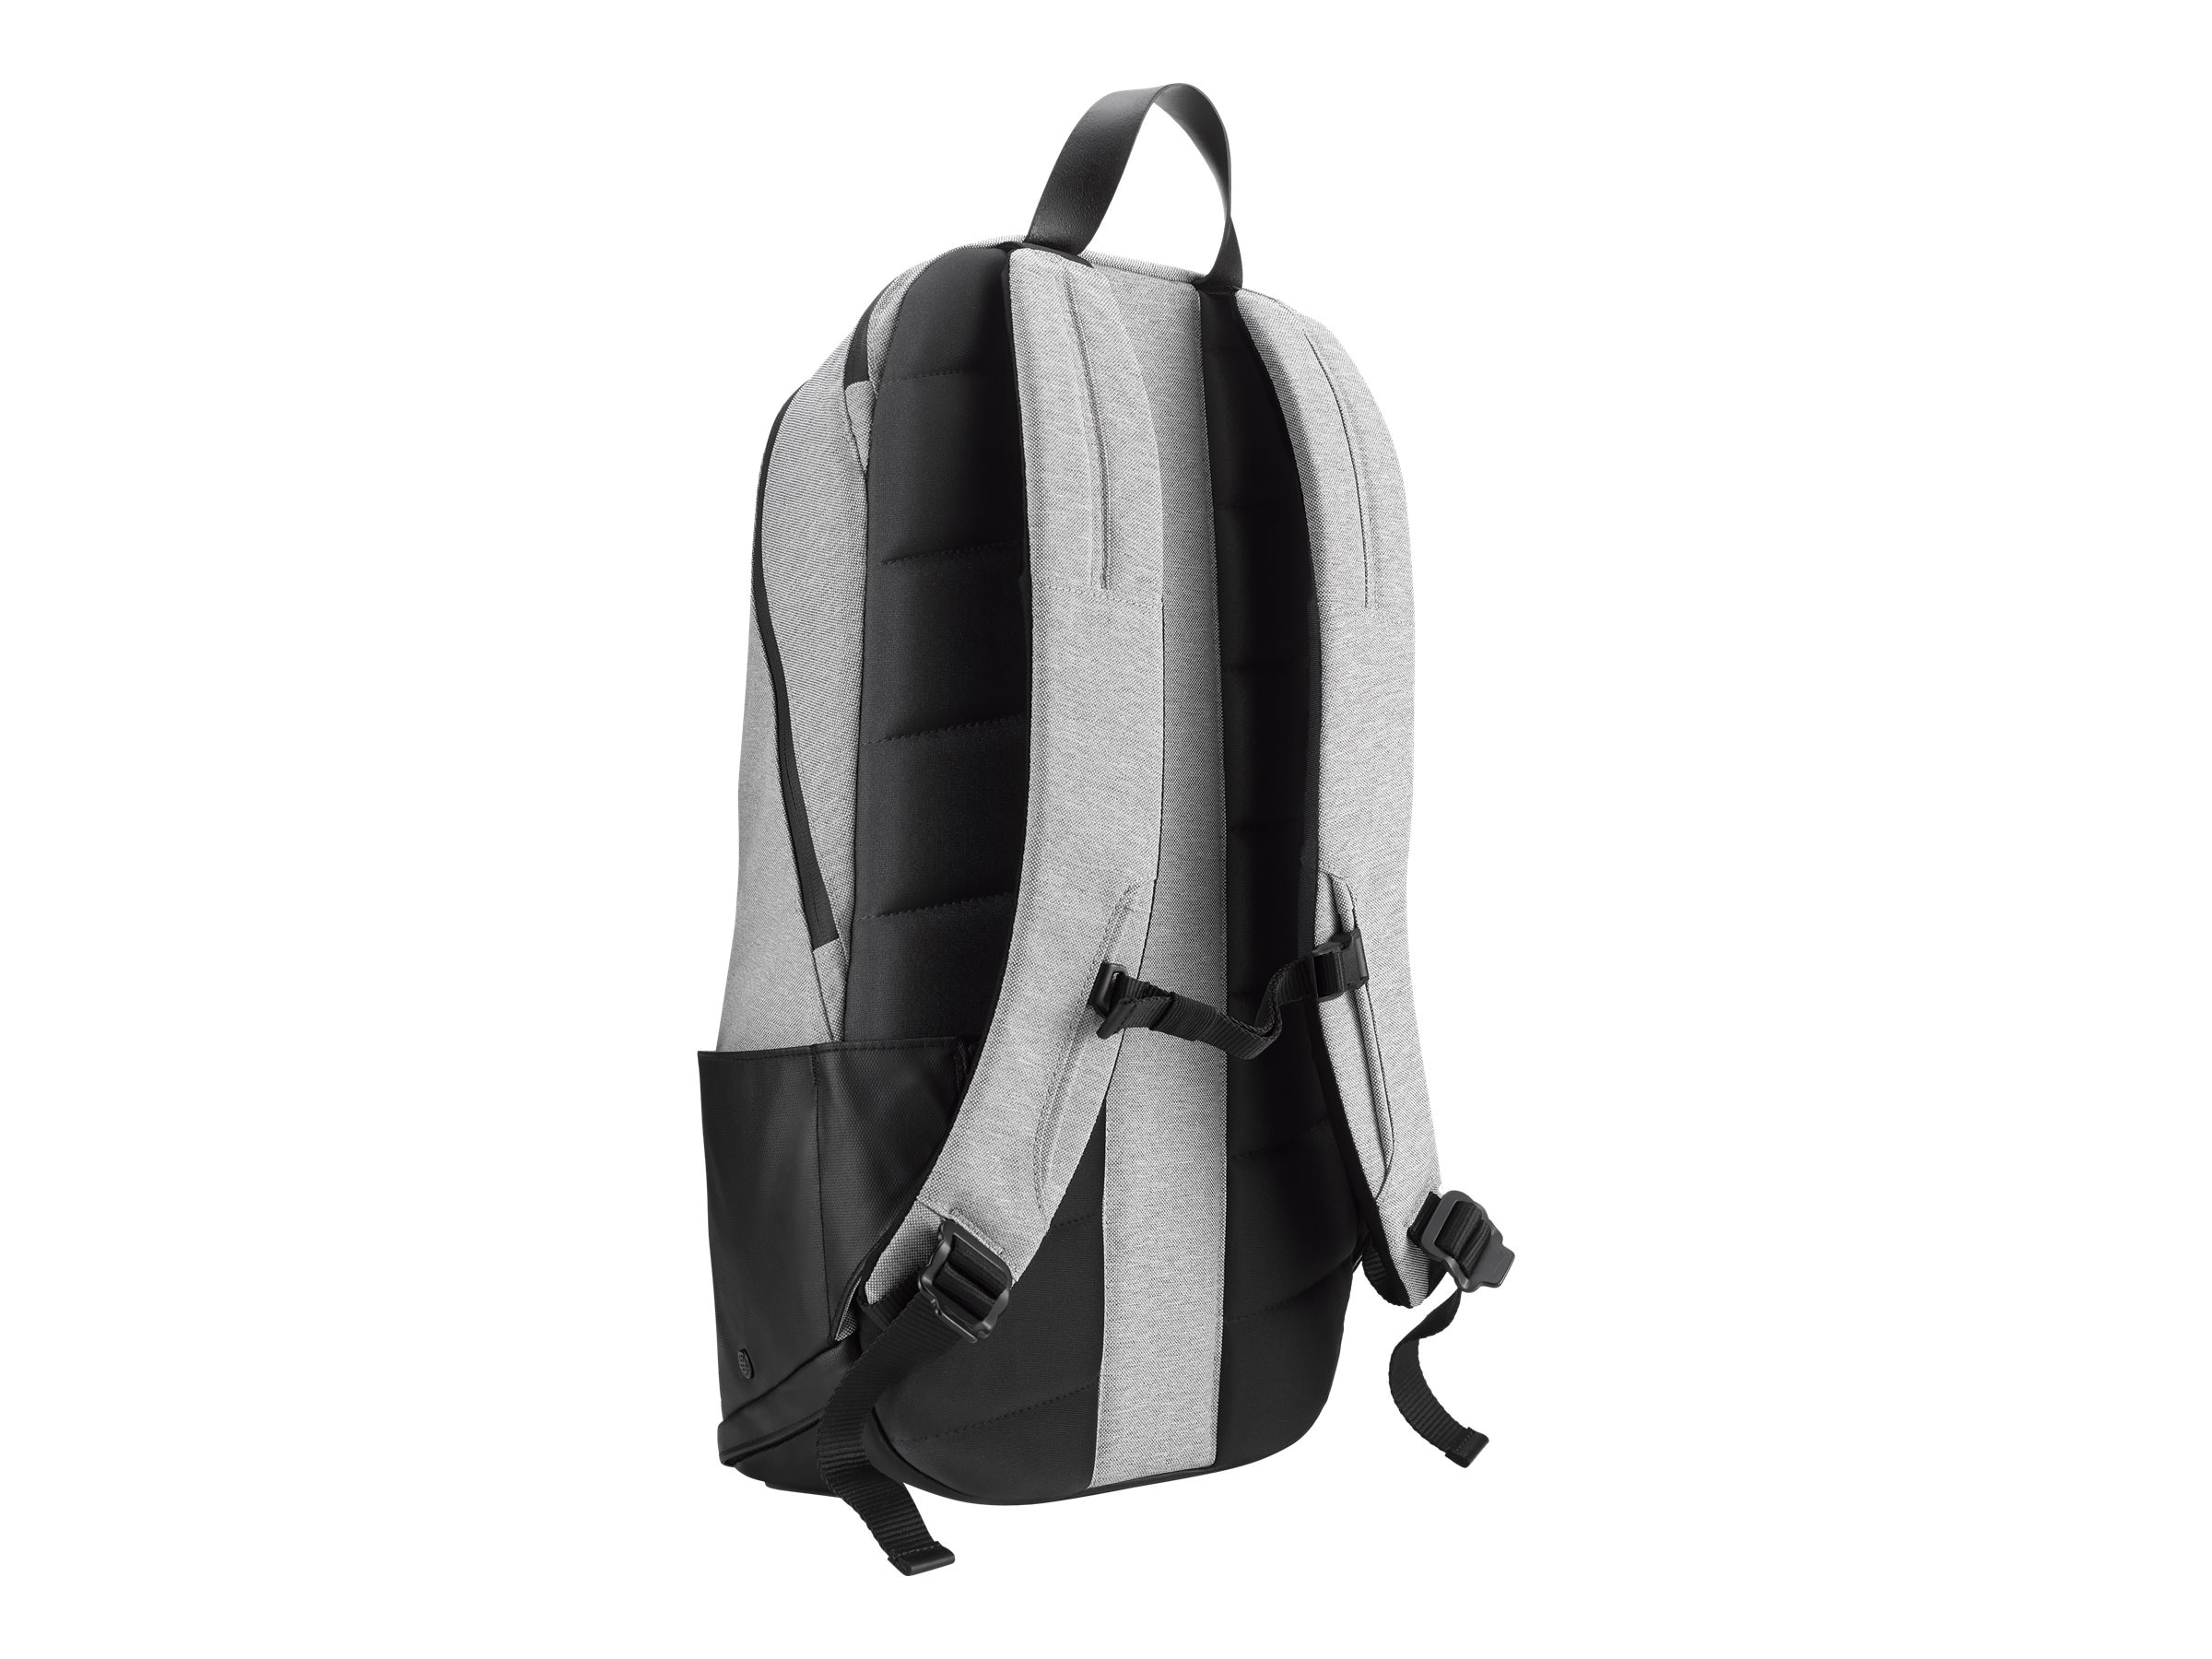 Targus Opin Maker Pack Notebook Carrying Backpack, Gray Slate, OSB01704